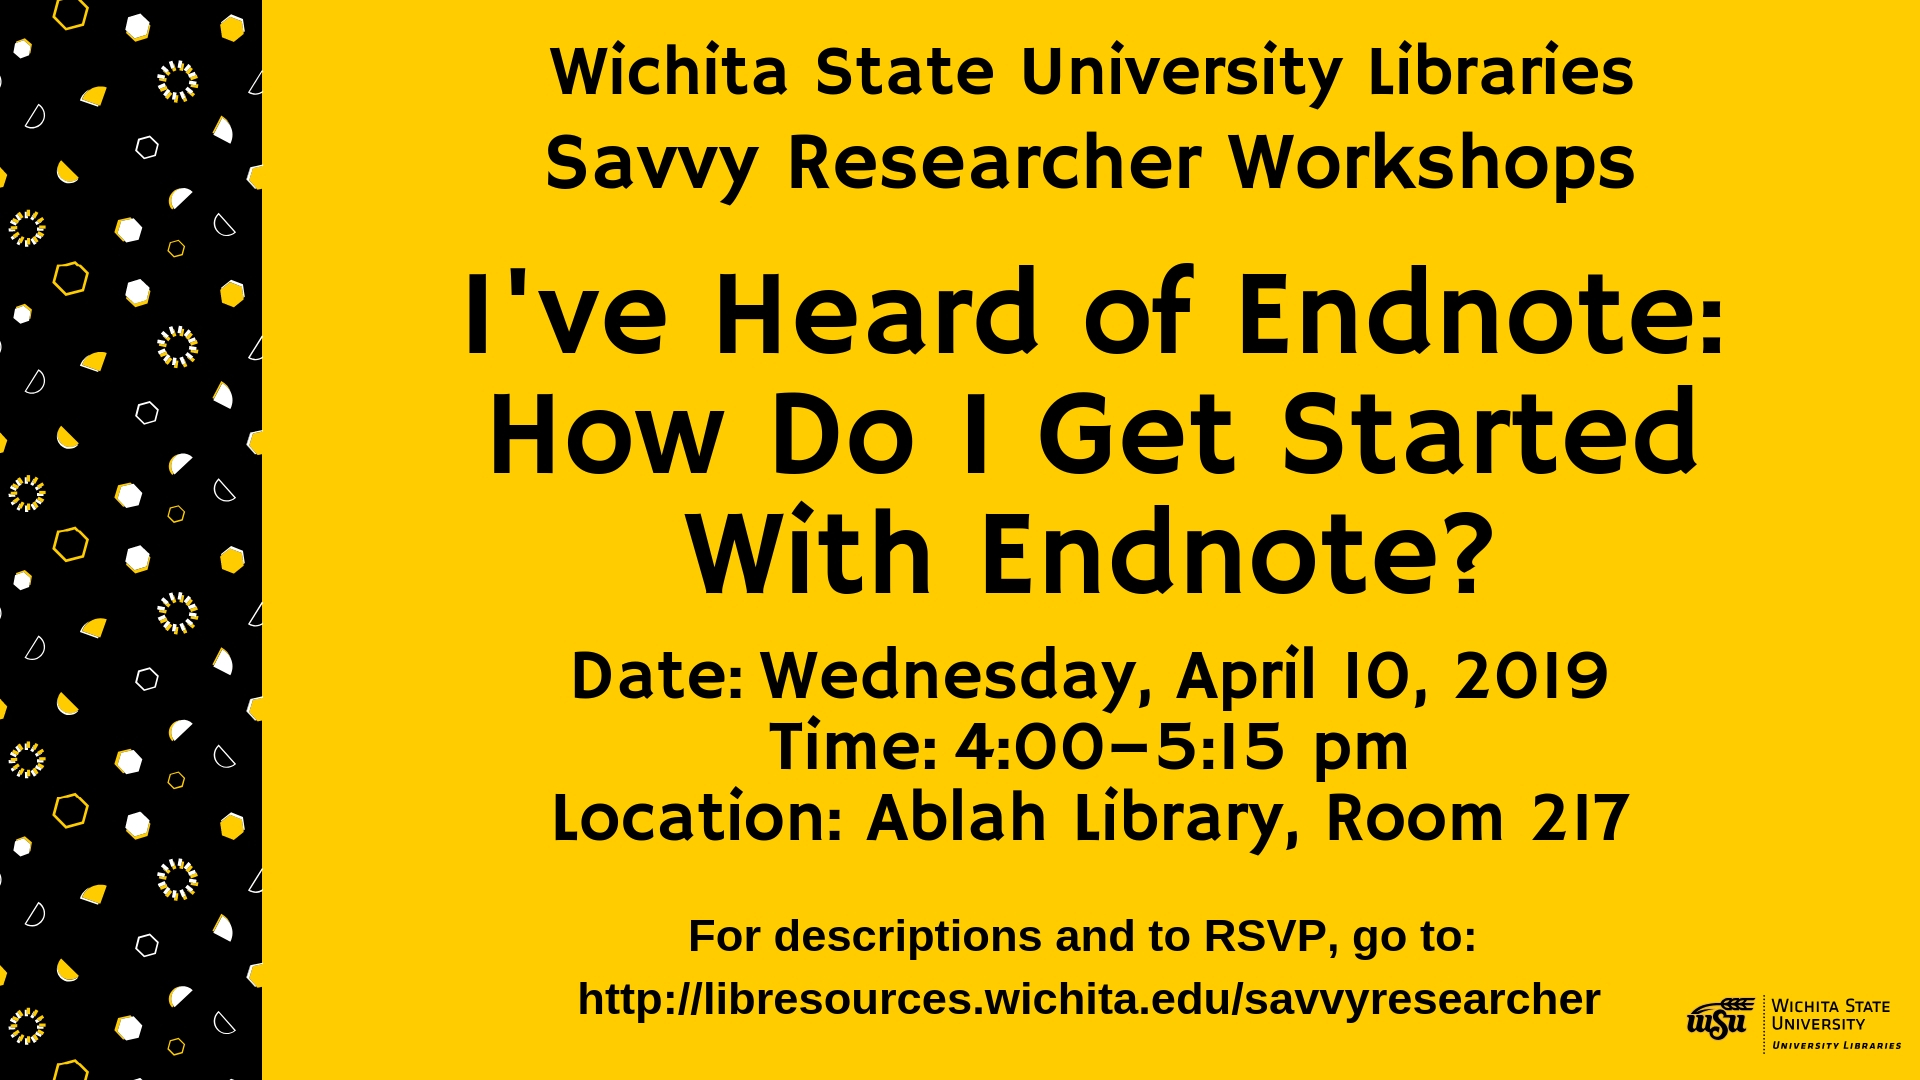 I've Heard of Endnote: How Do I Get Started?